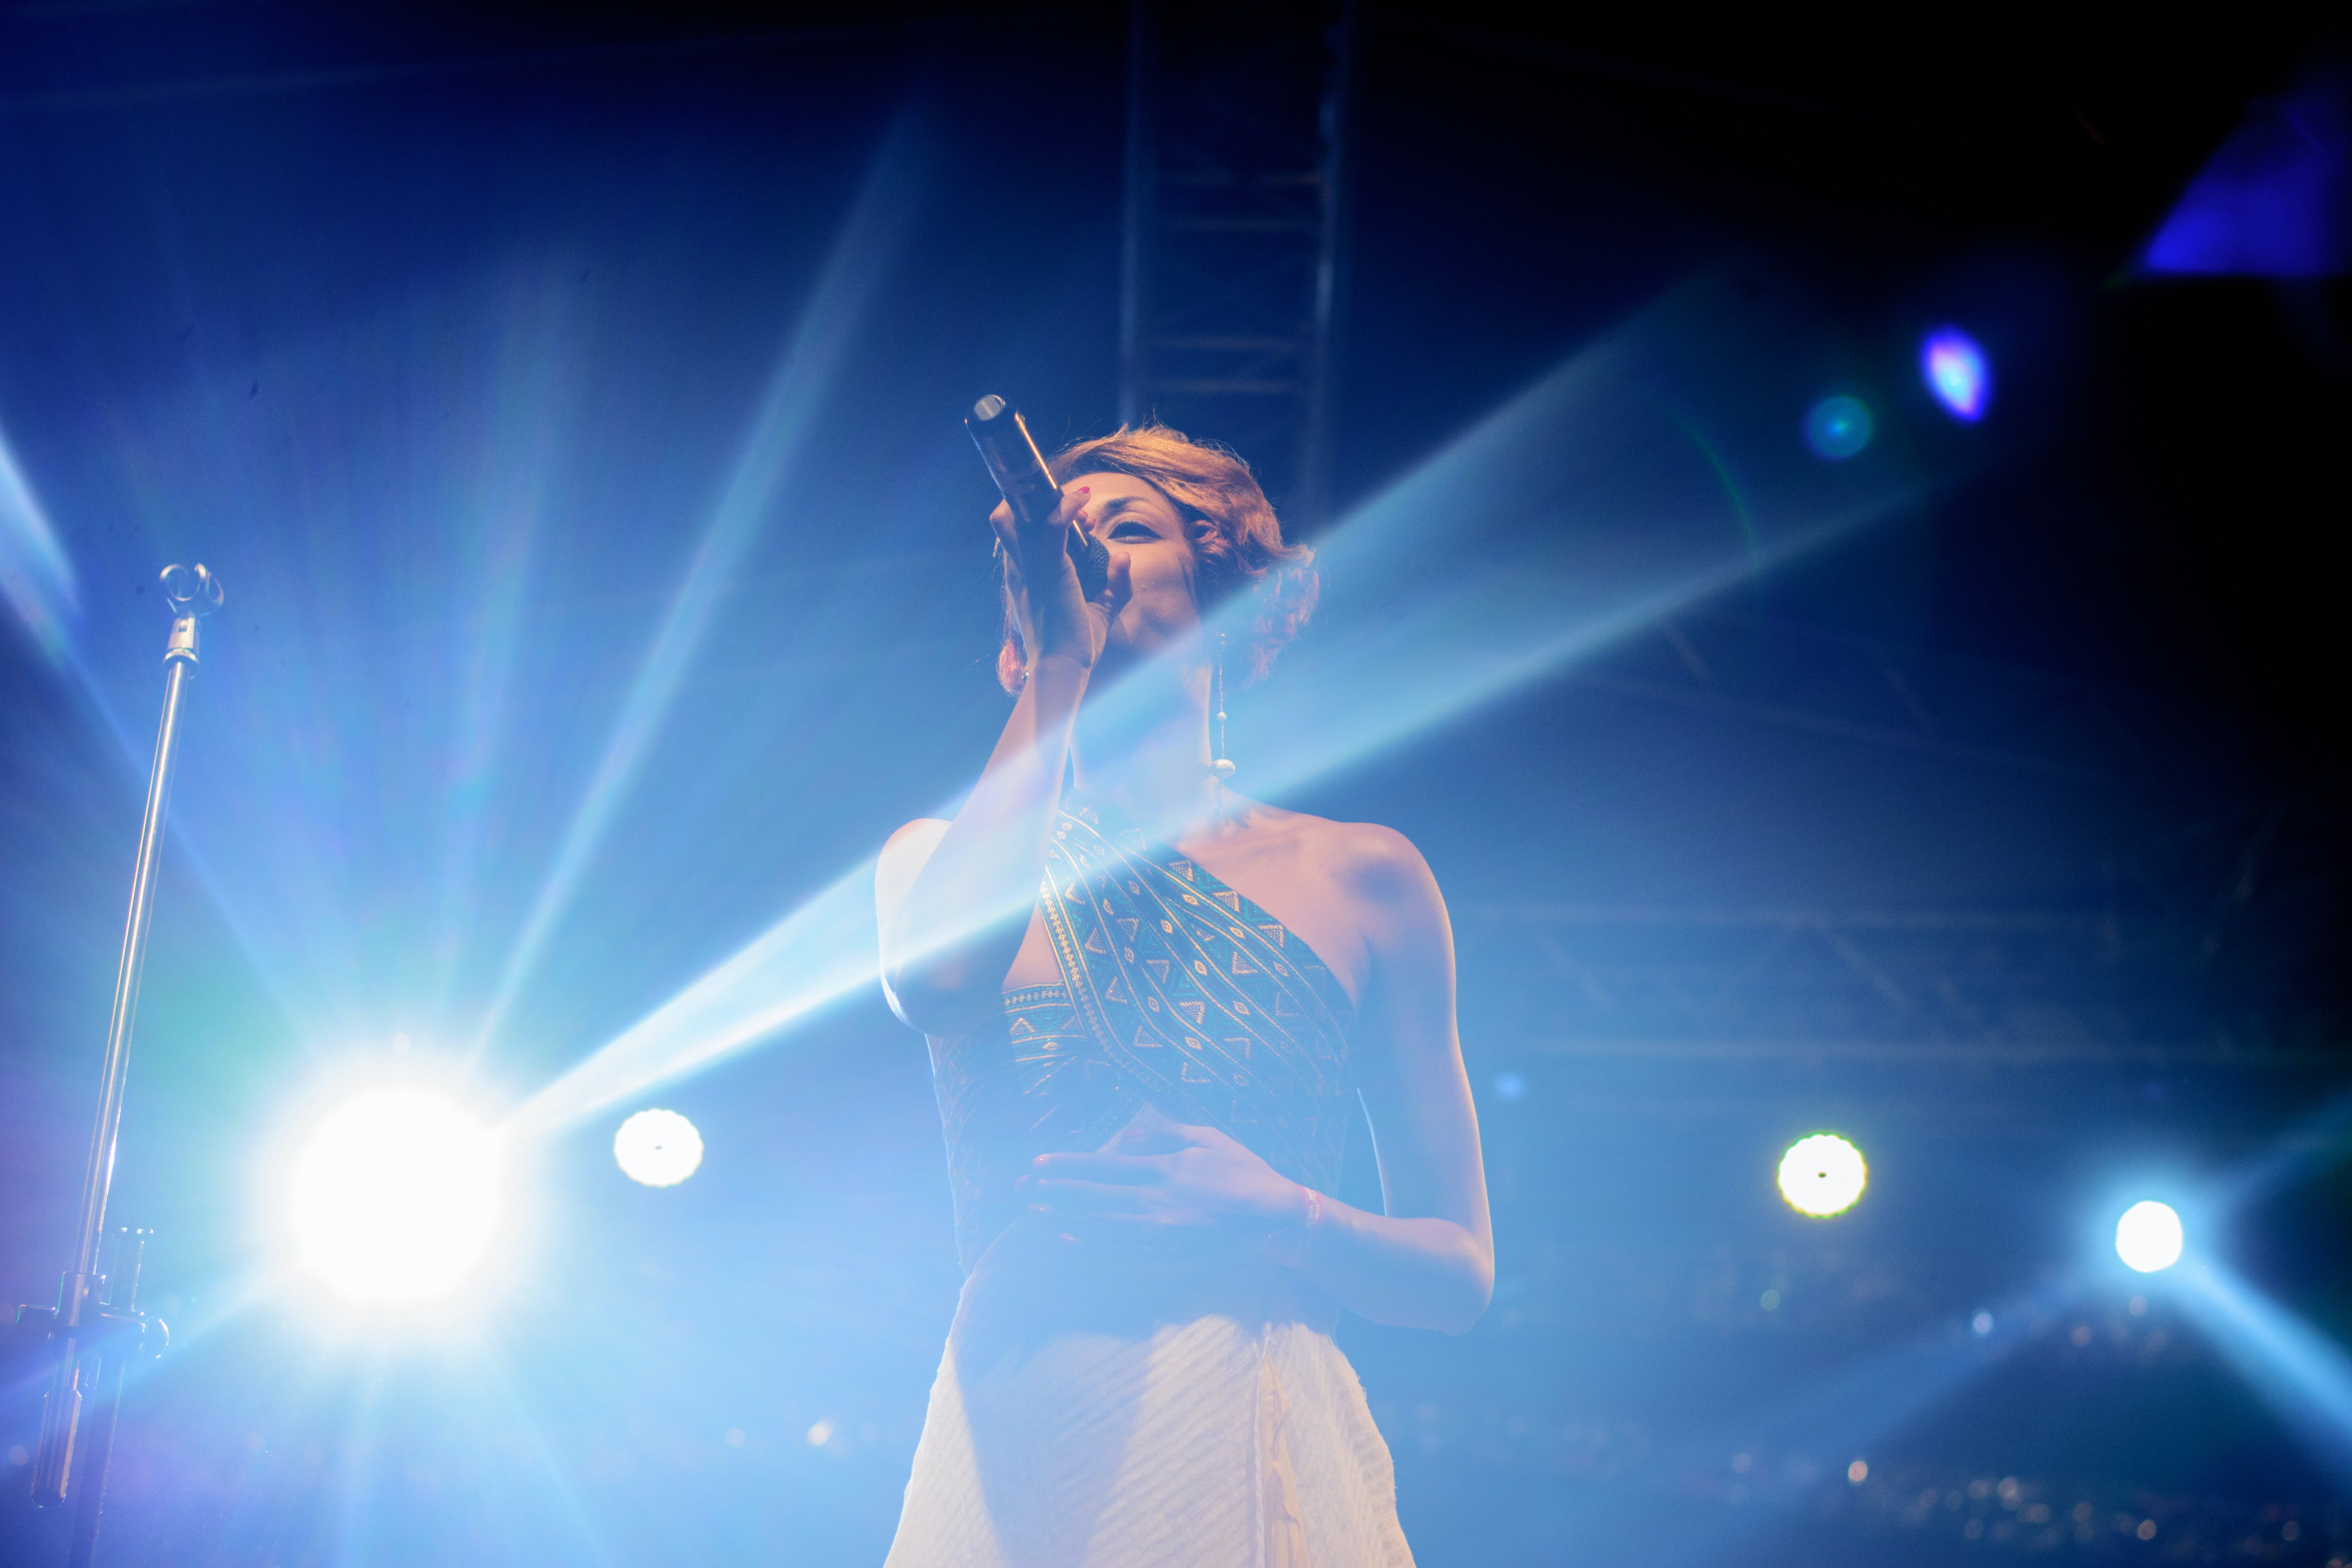 Person Wearing Black One-shoulder Top and Beige Skirt Holding Microphone